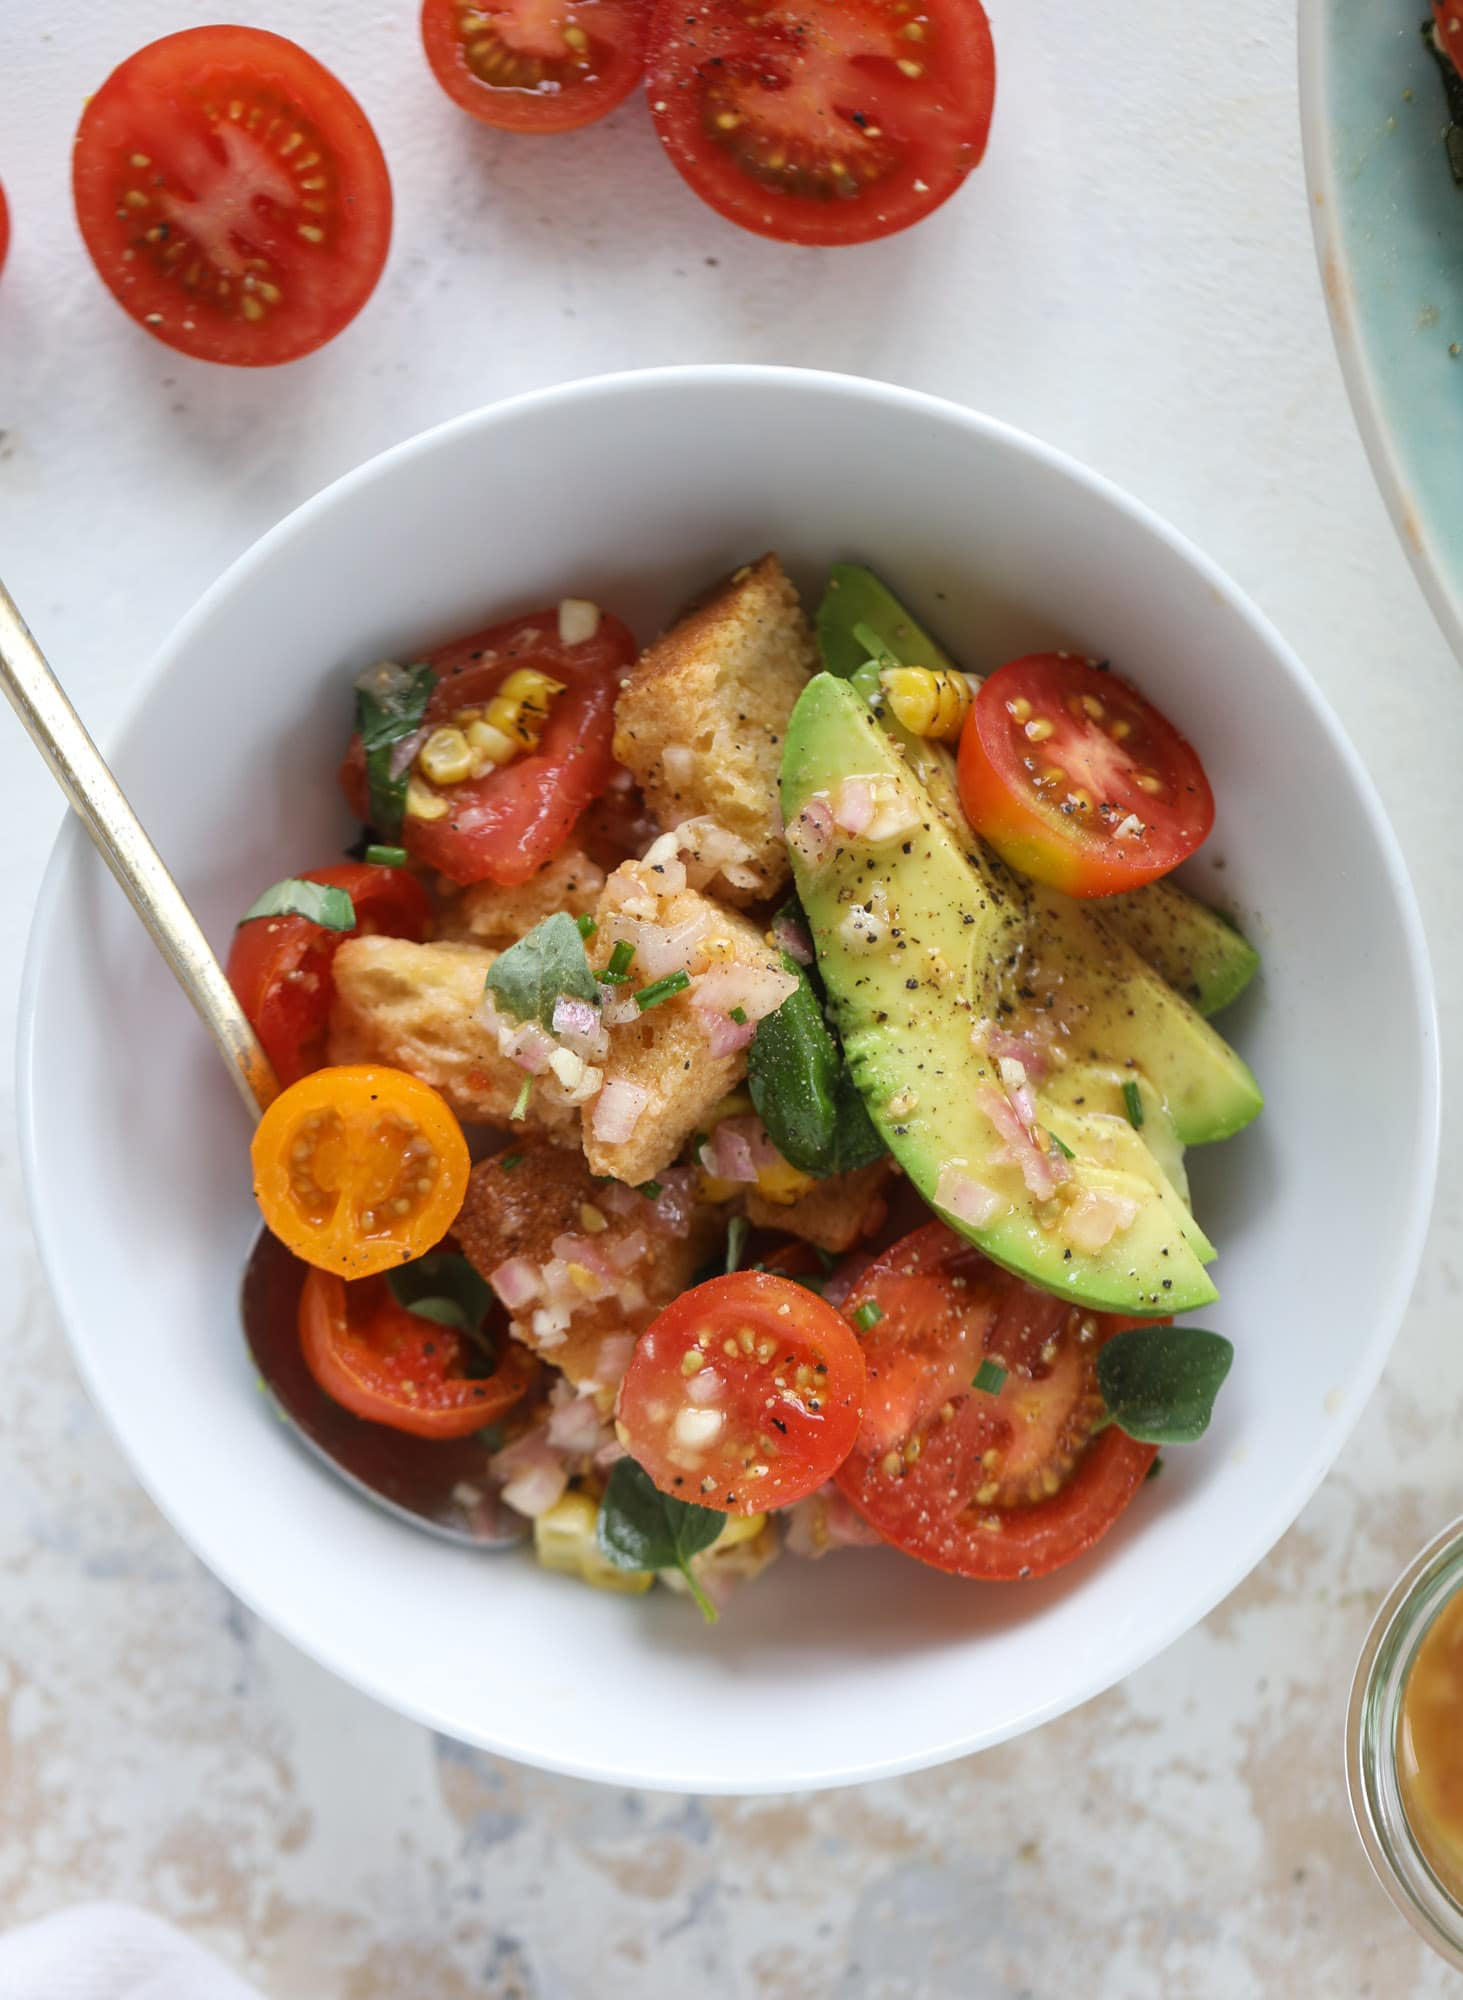 This is the perfect tomato panzanella salad! It's full of juicy, bursting, sweet tomatoes, toasted sourdough bread cubes, fresh herbs, grilled corn, sliced avocado and an incredible homemade dressing that blankets everything in deliciousness. SO good. I howsweeteats.com #panzanella #salad #tomato #basil #summer #corn #avocado #healthy #recipes